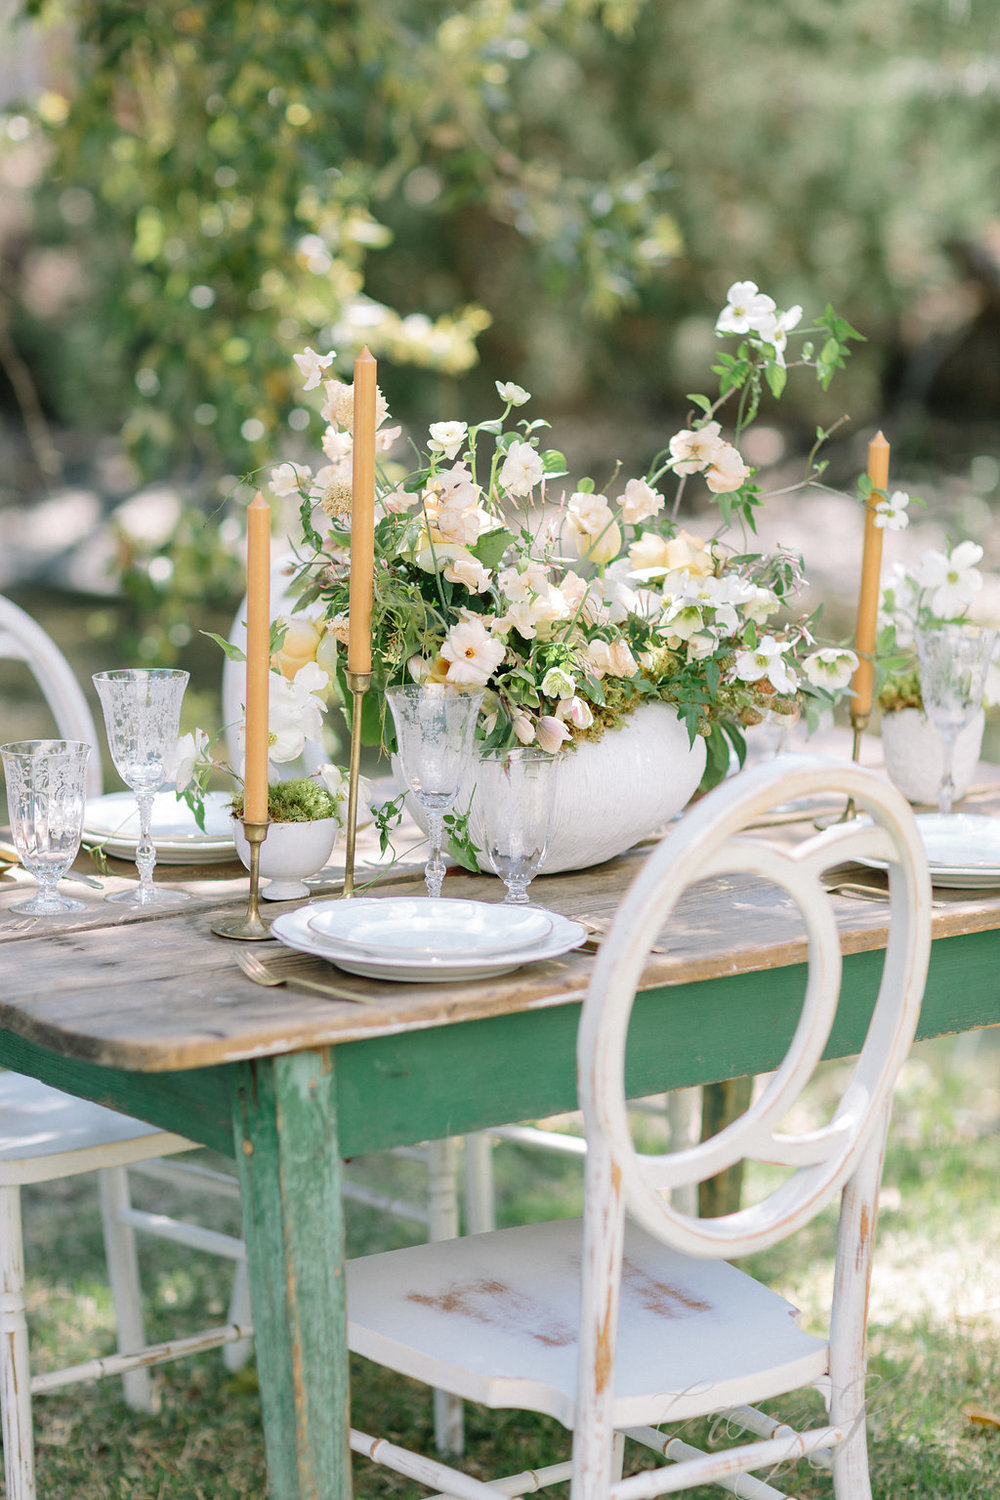 savannah-bridal-shop-ivory-and-beau-bridal-boutique-casey-green-photography-tybee-island-chapel-wedding-planning-mistakes-7.jpg